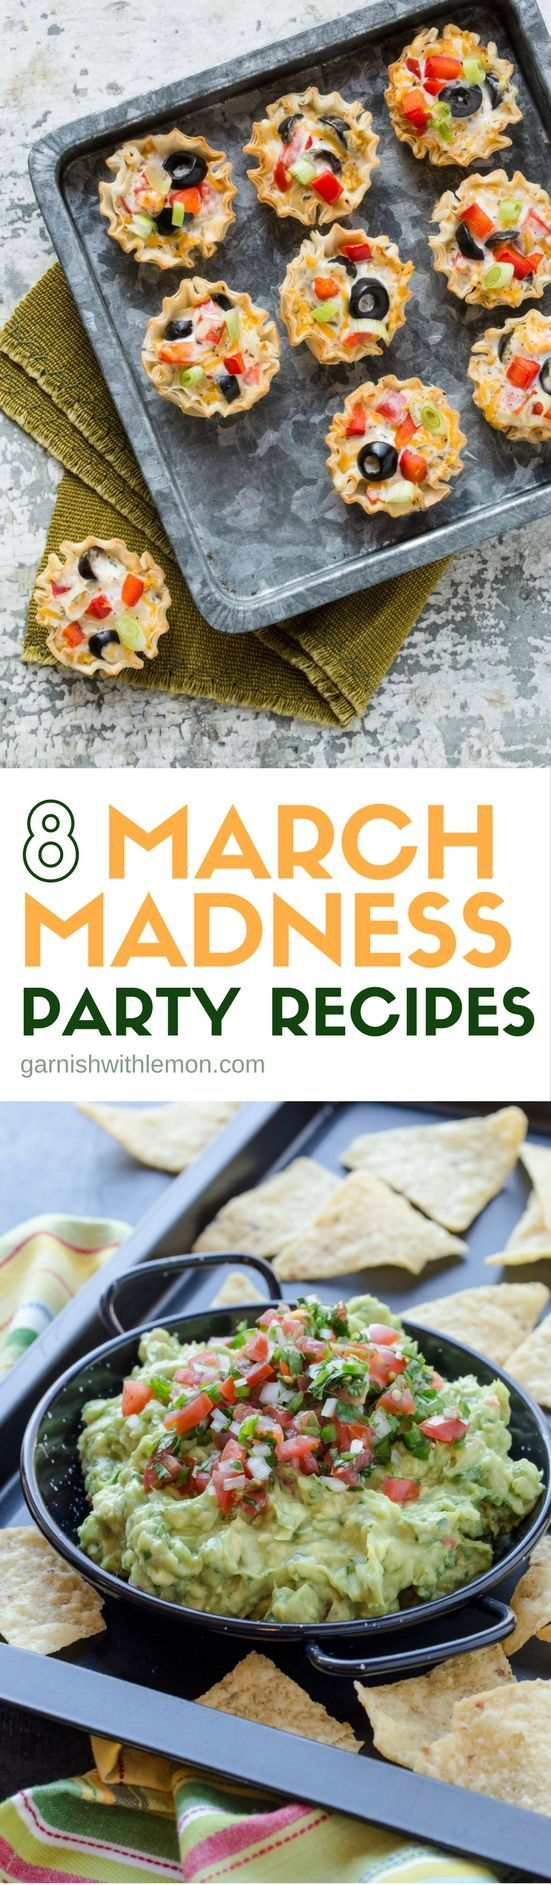 Looking for the perfect party menu? We have done the hard work for you. Be ready to host a fabulous party with these 8 March Madness Party Recipes!